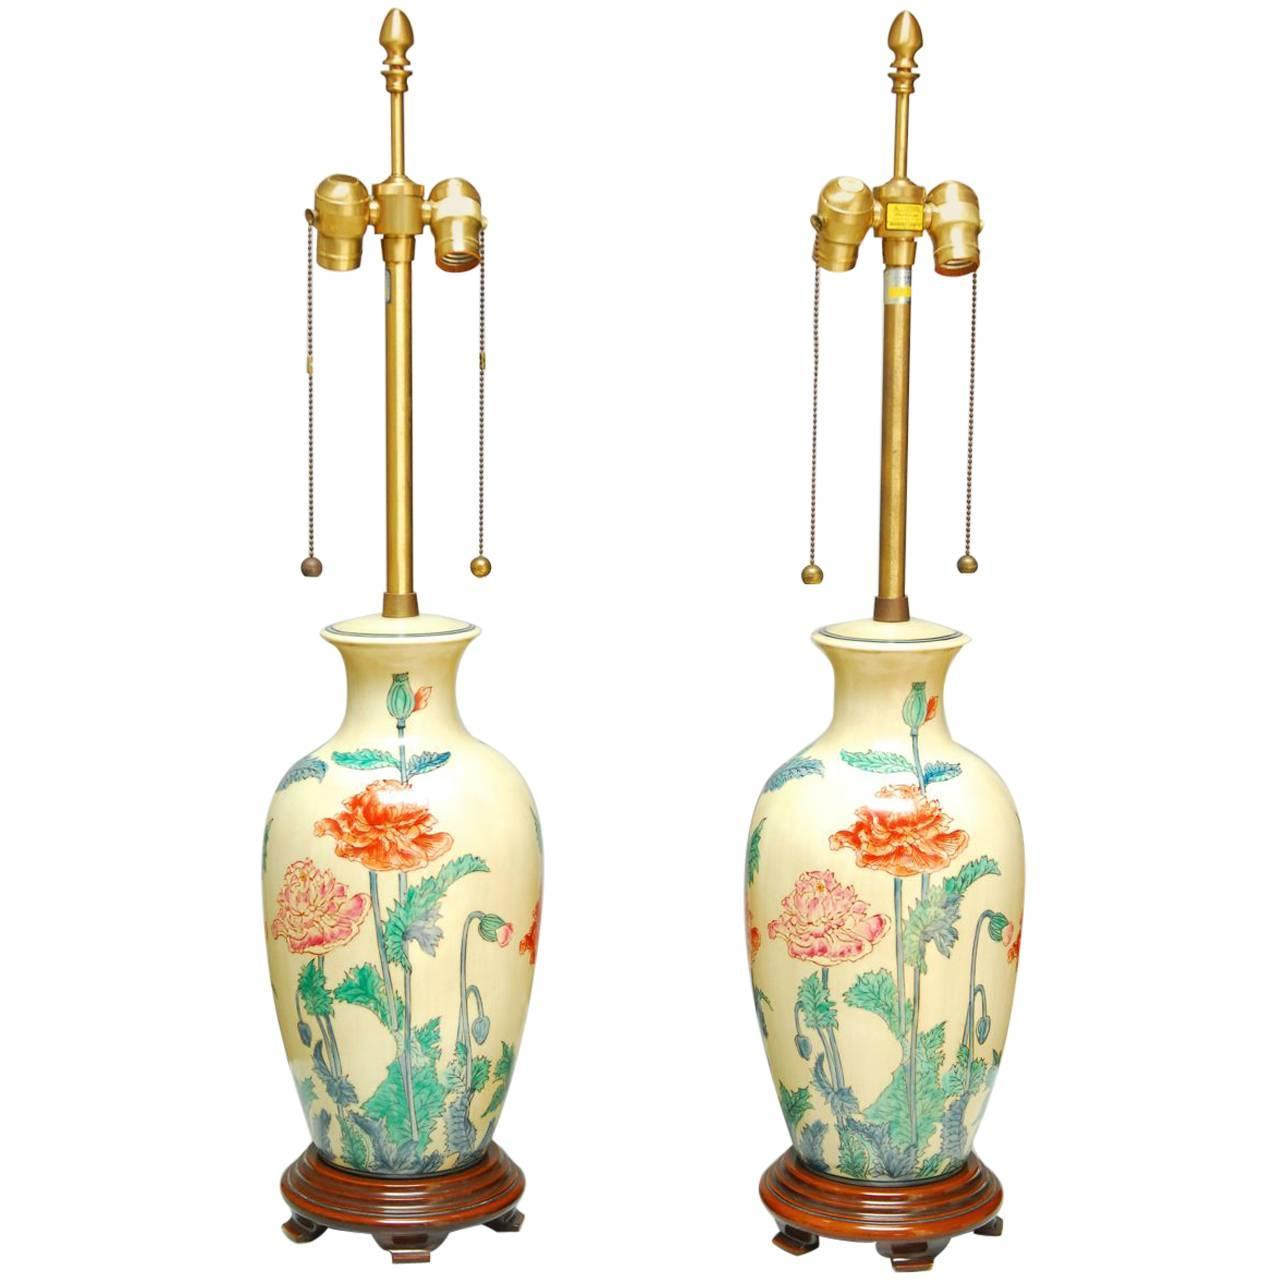 Pair Of Marbro Ceramic Floral Vase Table Lamps For Sale At